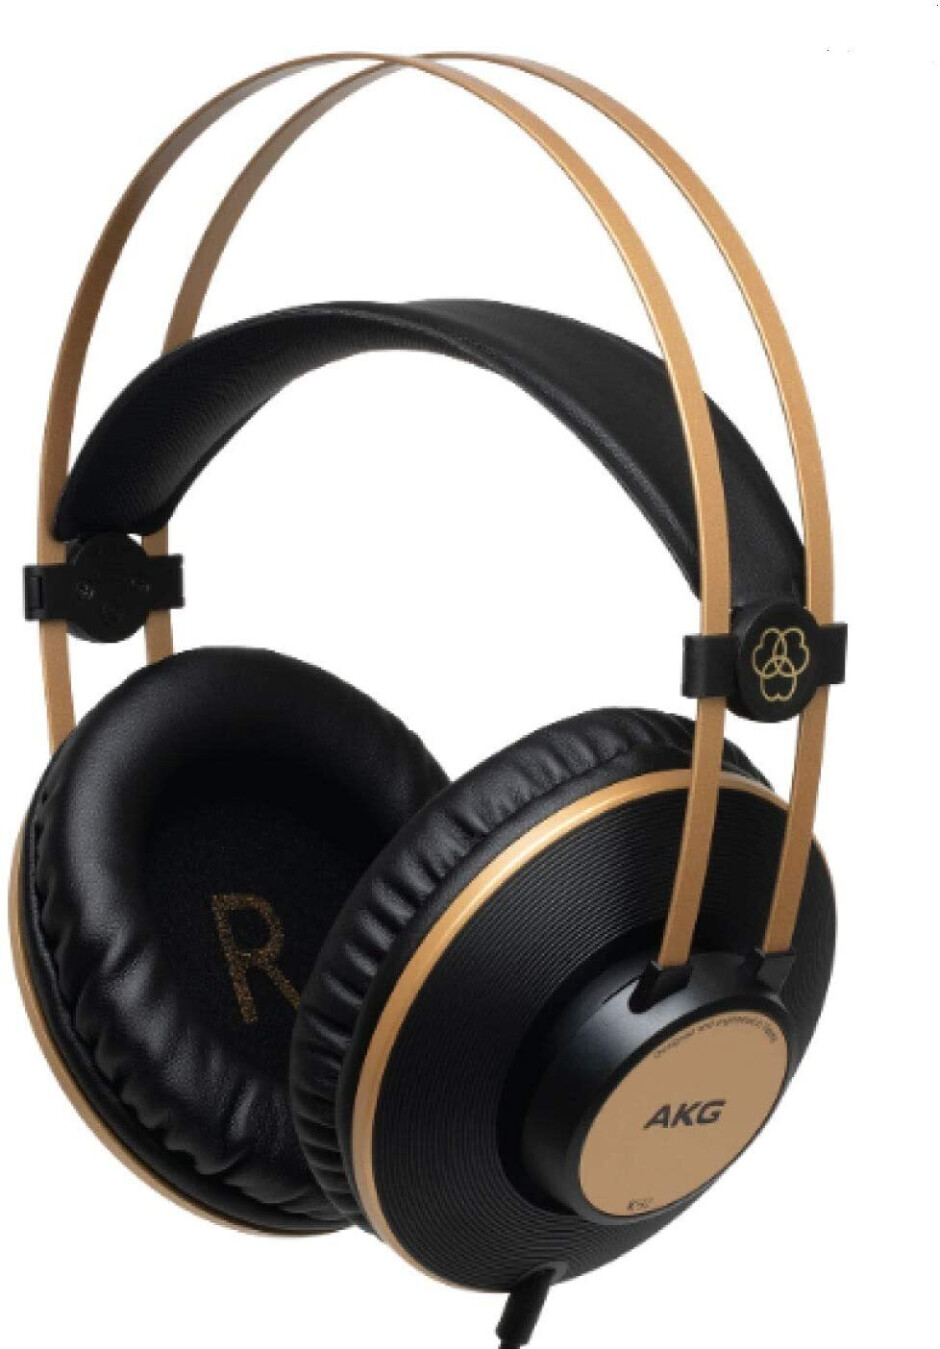 The best wired headphones you can buy – updated September 2021